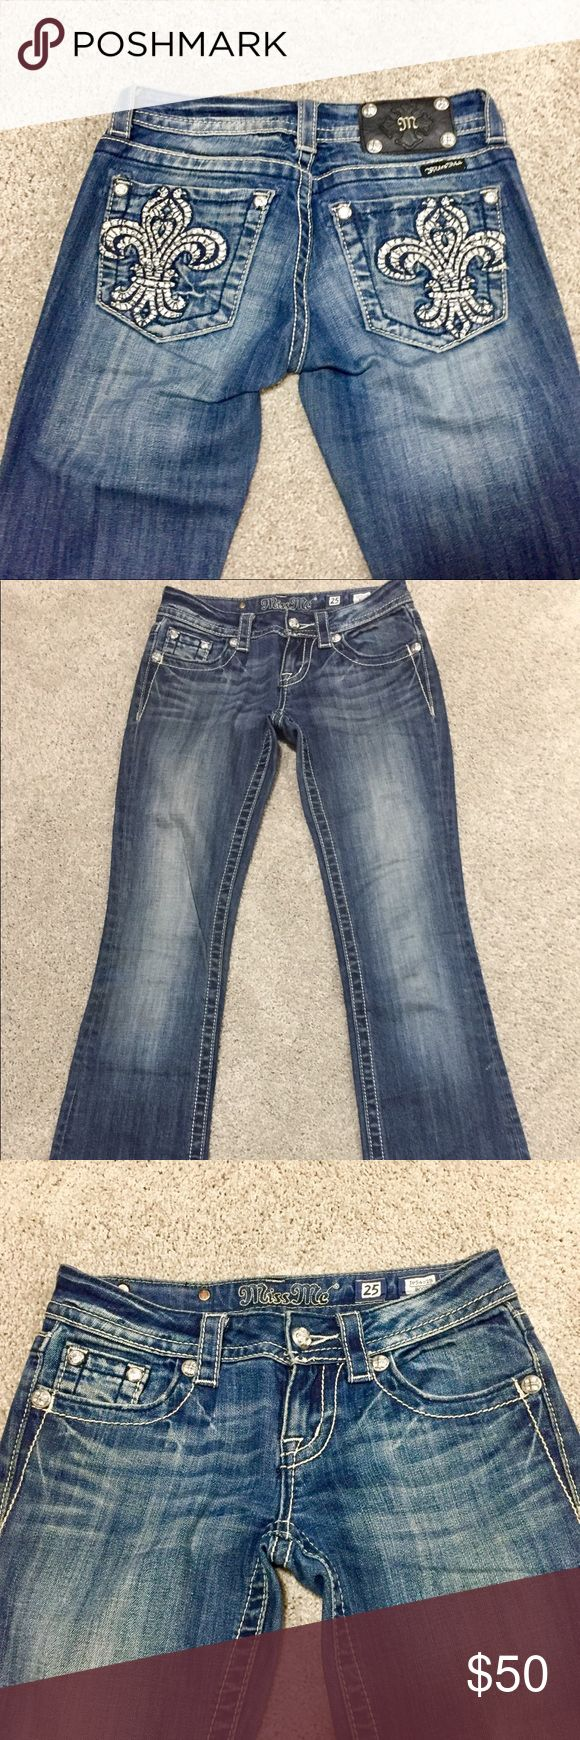 👖 Miss Me Jeans - Size 25 - GREAT Condition 👖 Great condition pair of Miss Me jeans, size 25, fits true to size. Medium wash. Some wear on the bottom where the bottom of the pants hit the floor (they are long) but any other marks on the jeans are small distress marks it came with. Comes from pet free and smoke free home Miss Me Pants Boot Cut & Flare